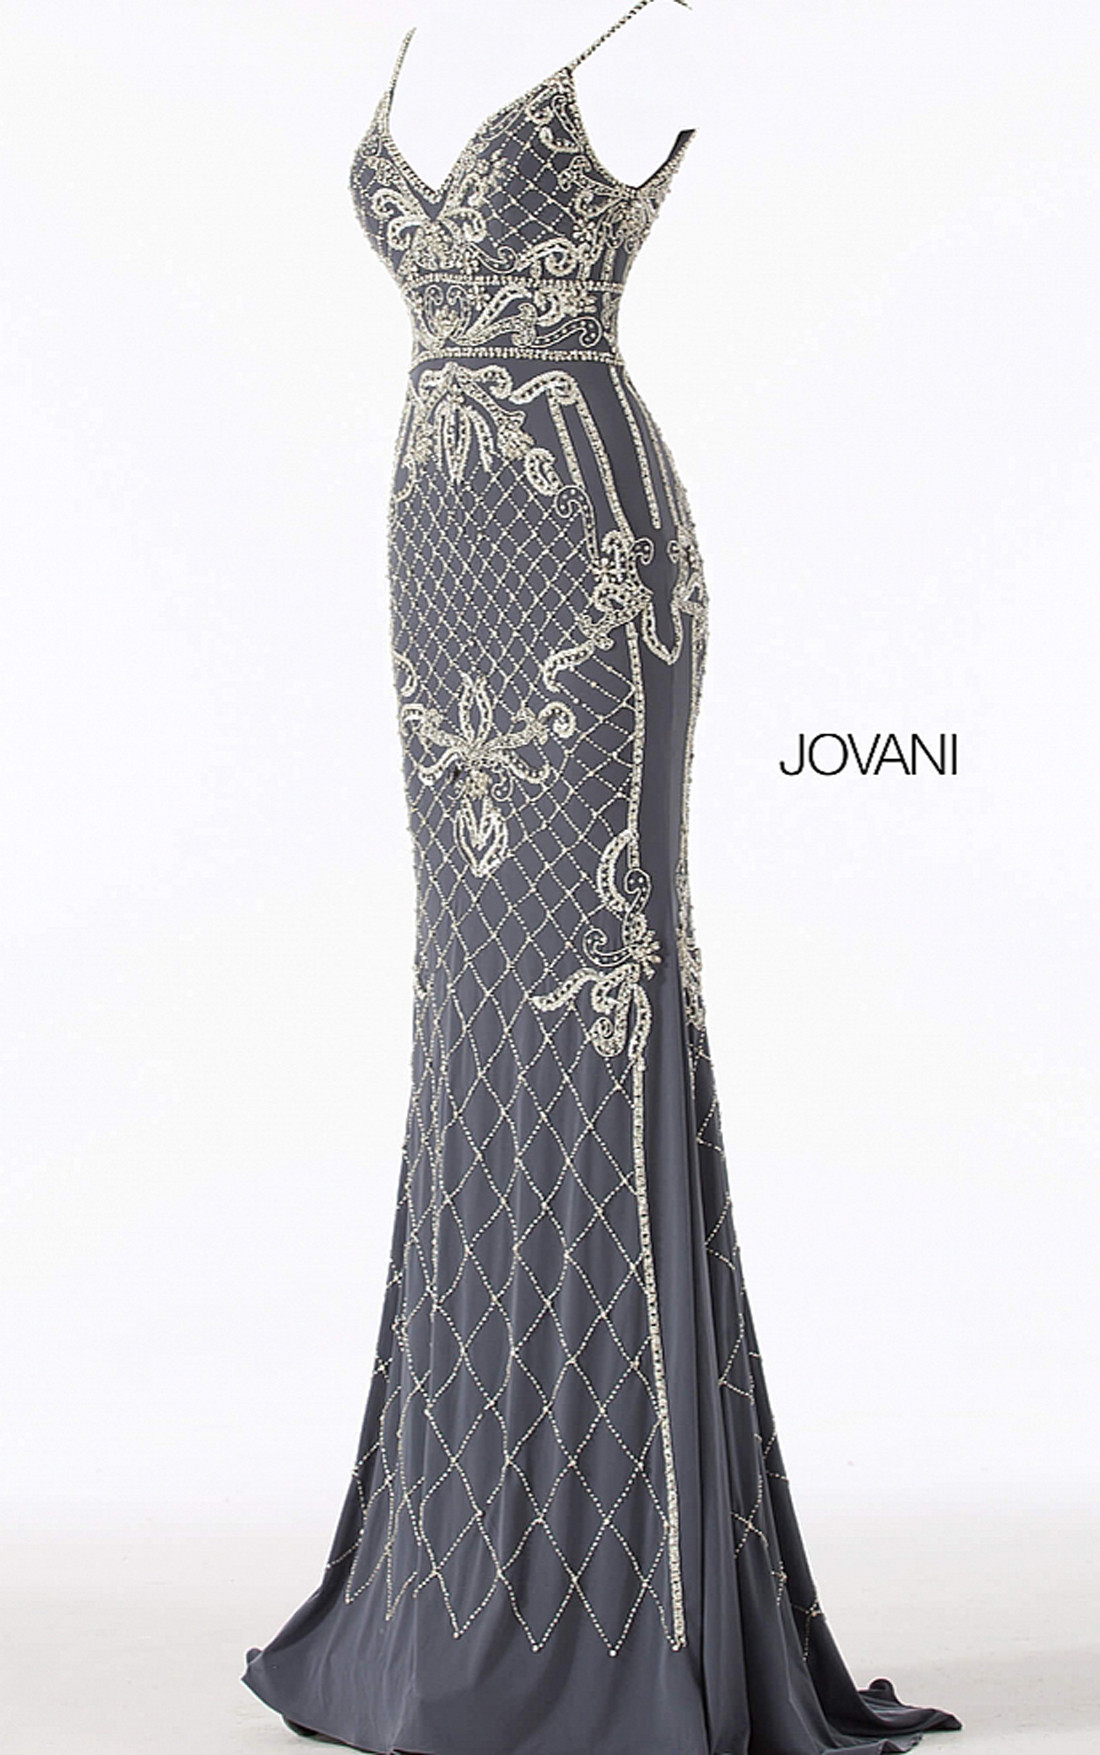 Jovani - Gunmetal Silver Embellished V Neck Fitted Dress (57612)